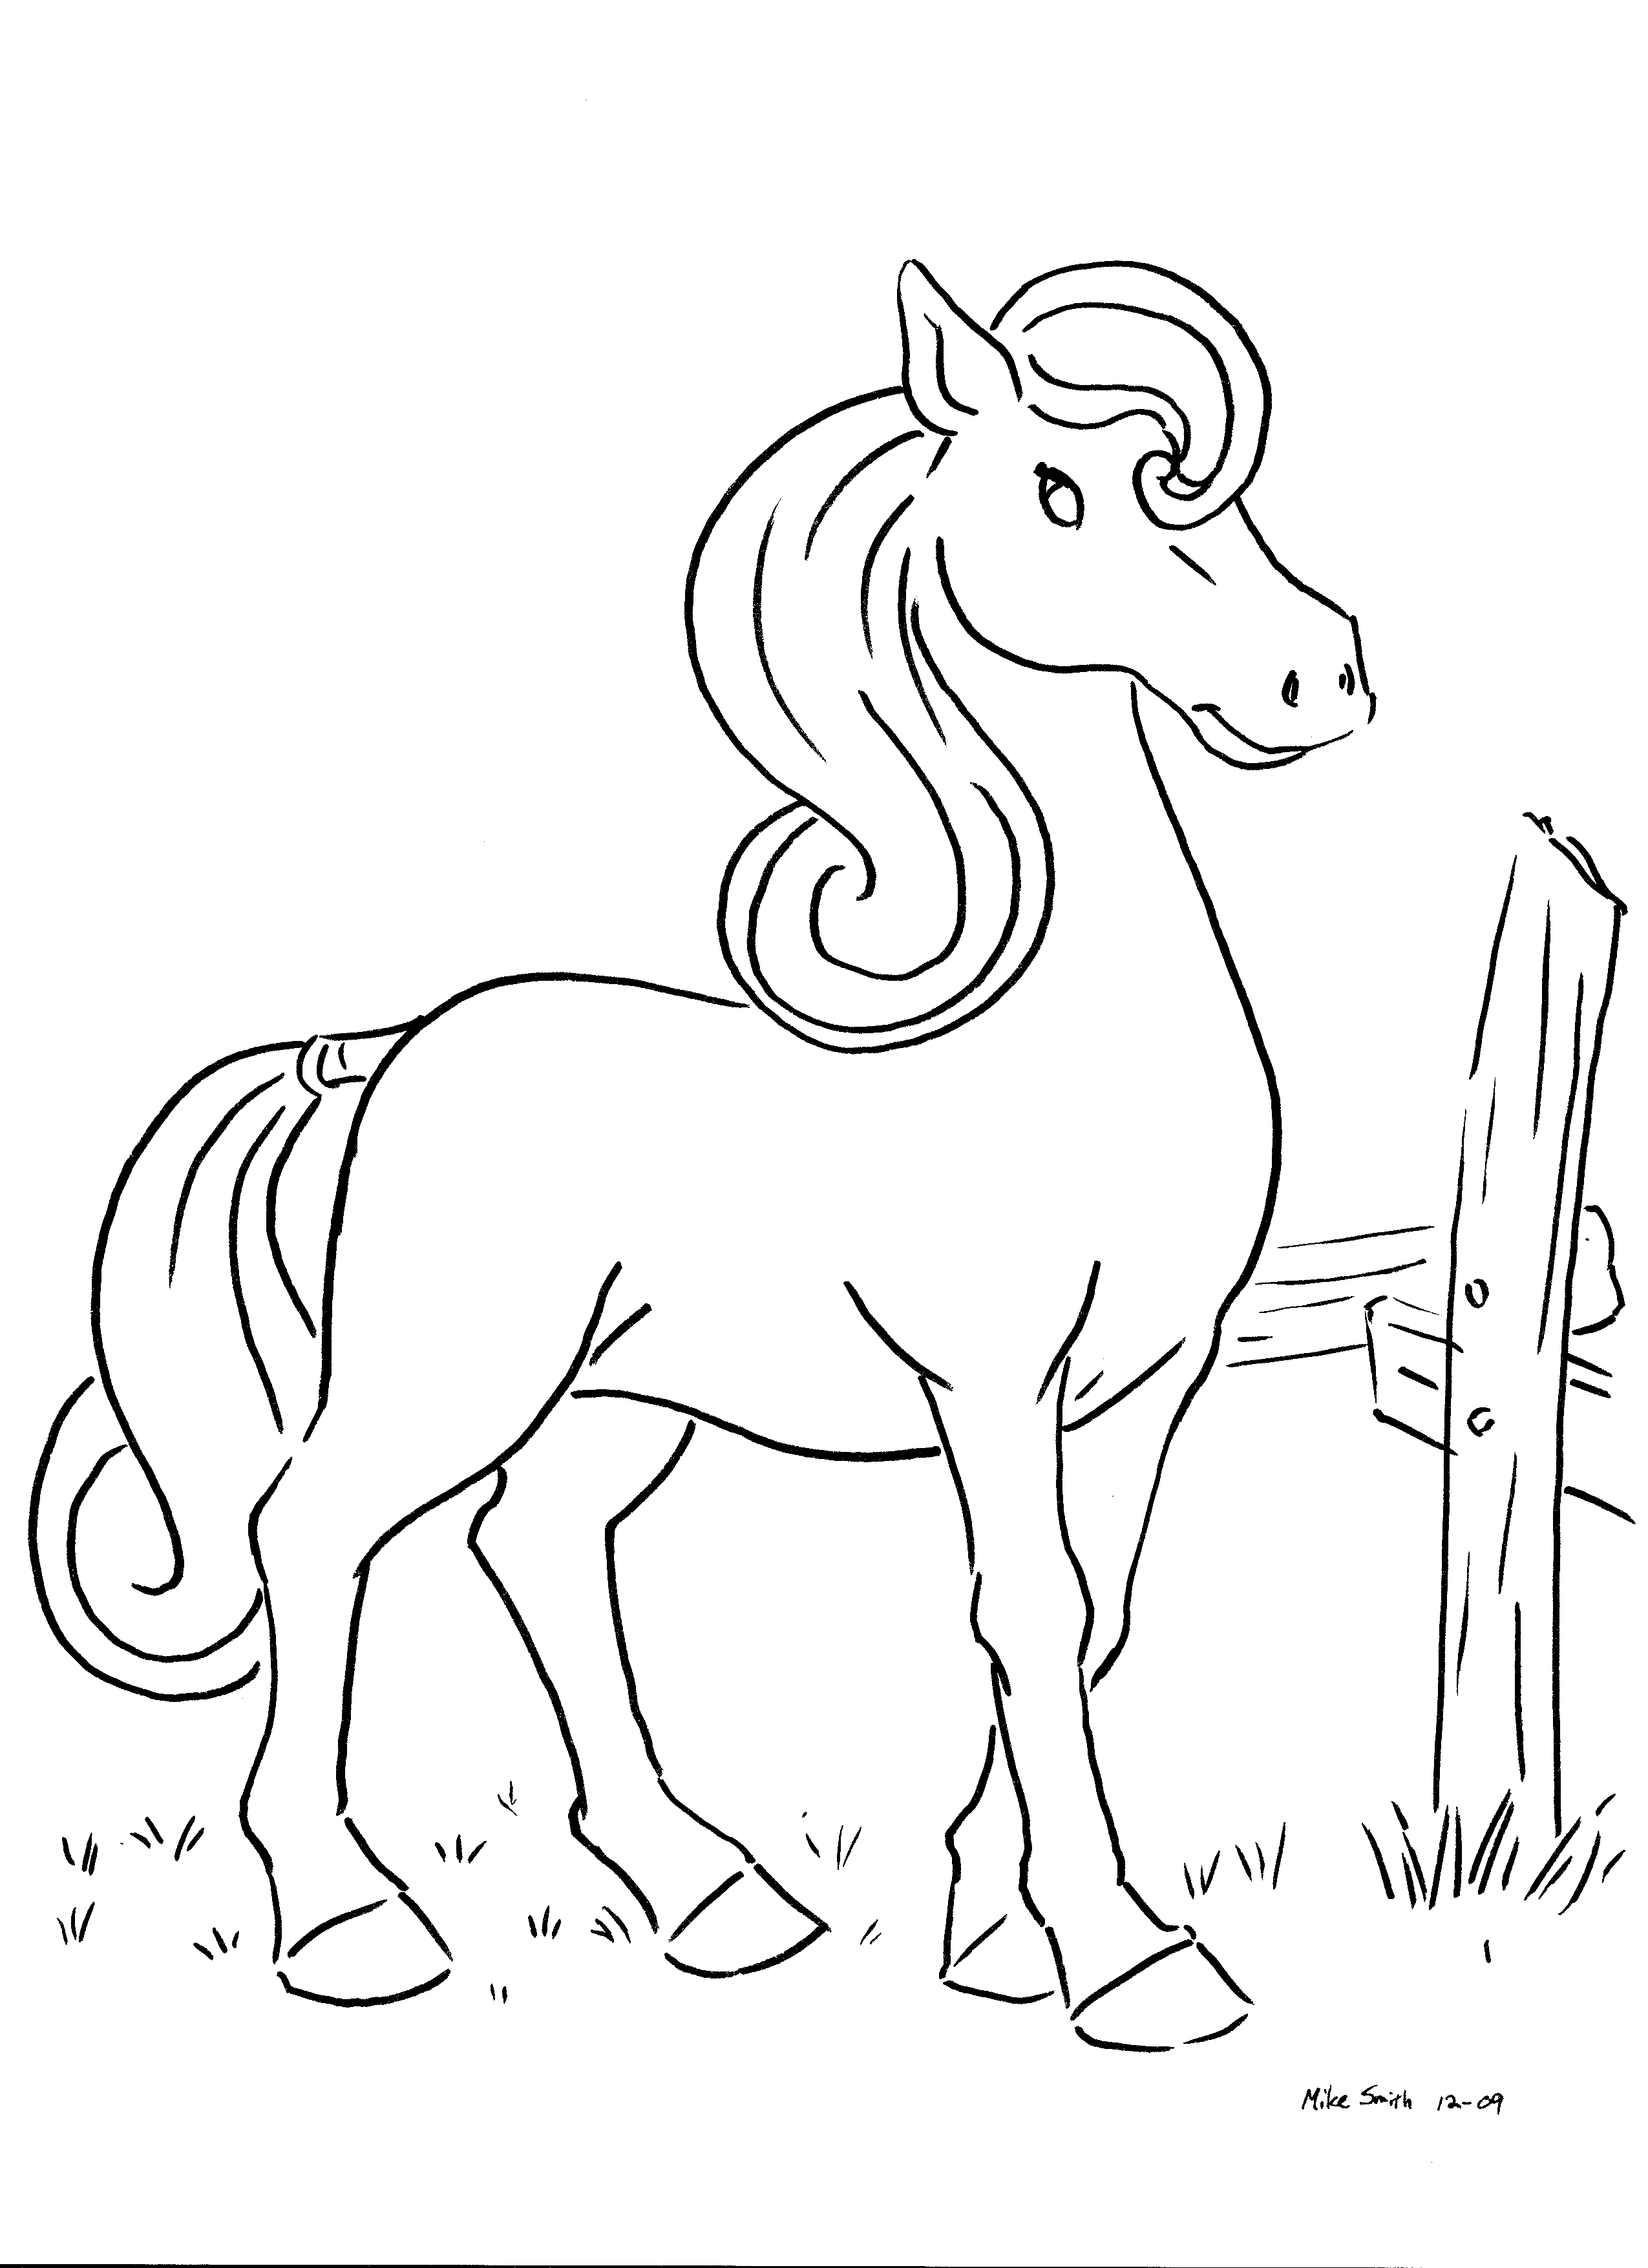 Coloring Book Pages « Elecorn ® : The Animated Coder